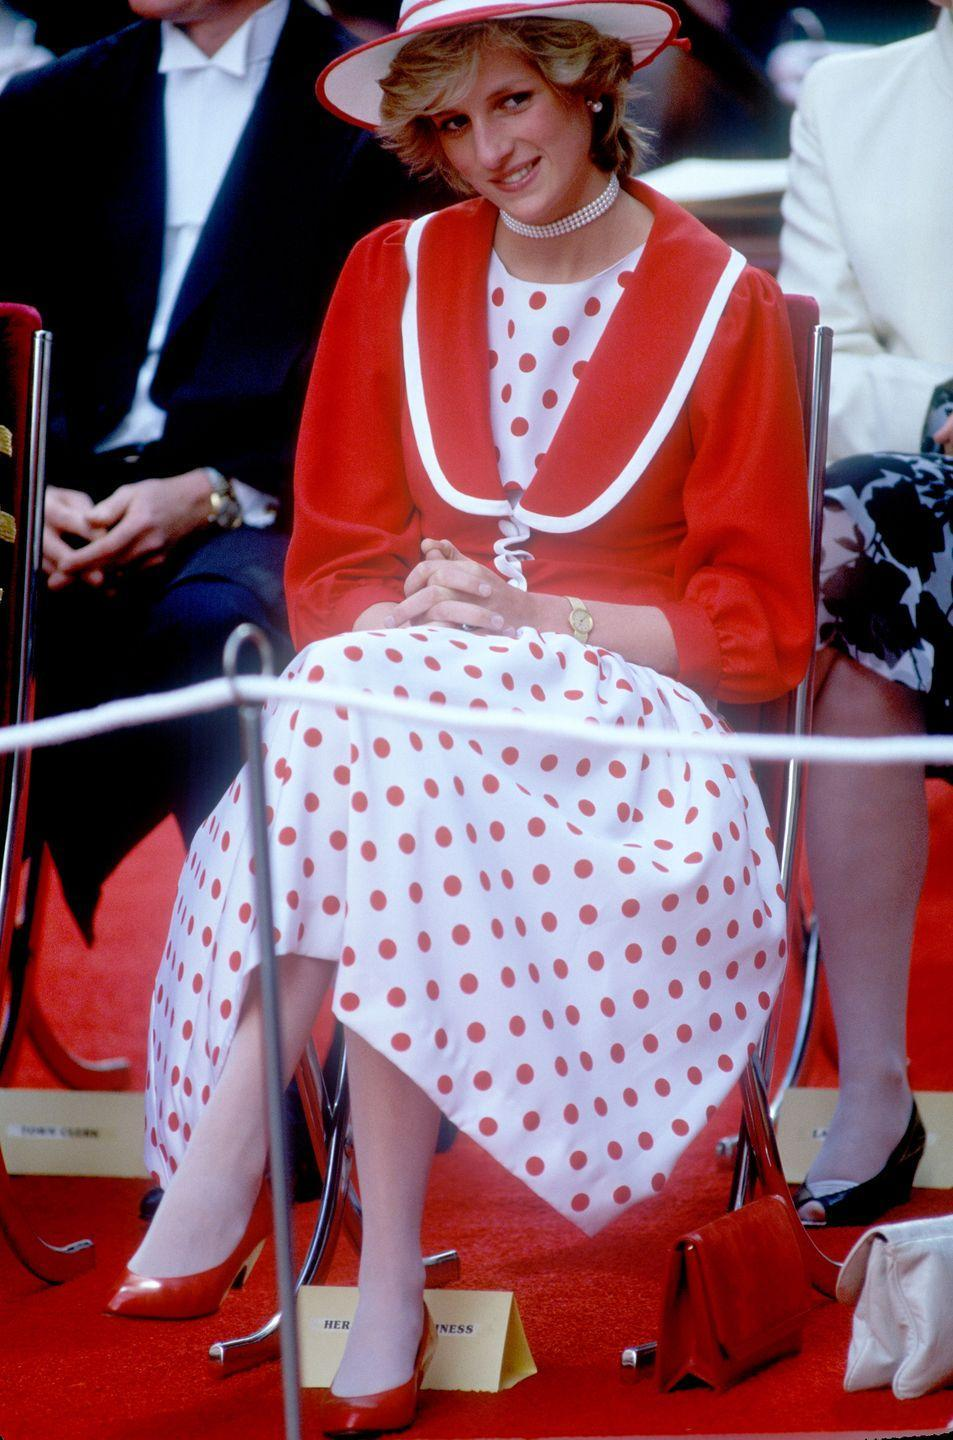 <p>Princess Diana wears a red polka dot ensemble at the opening of the Bourke Street Mall in Melbourne. </p>